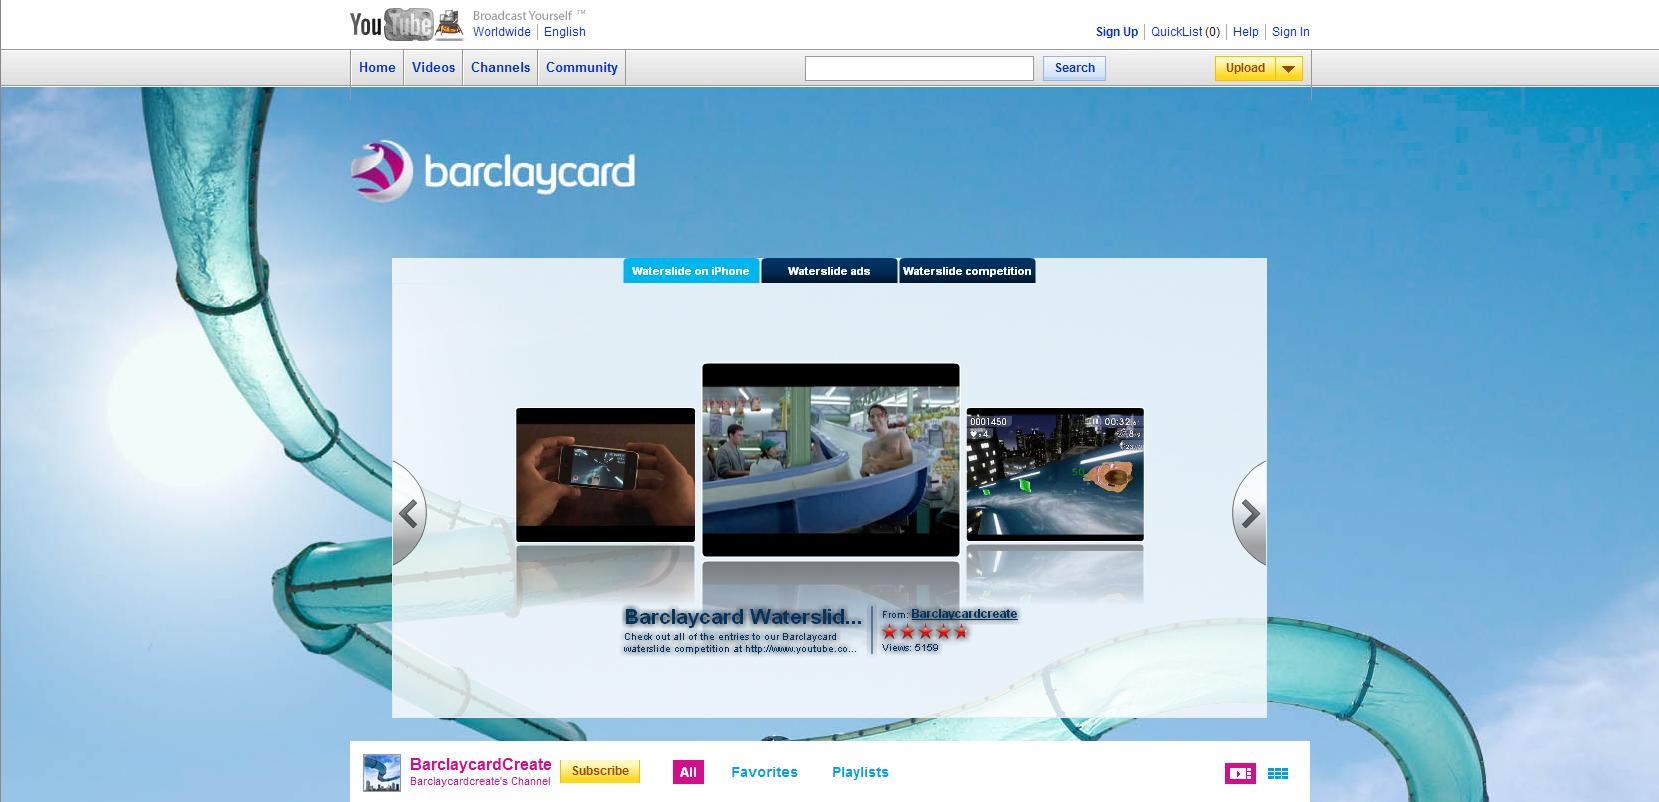 YouTube Brand Channel - Barclaycard Create